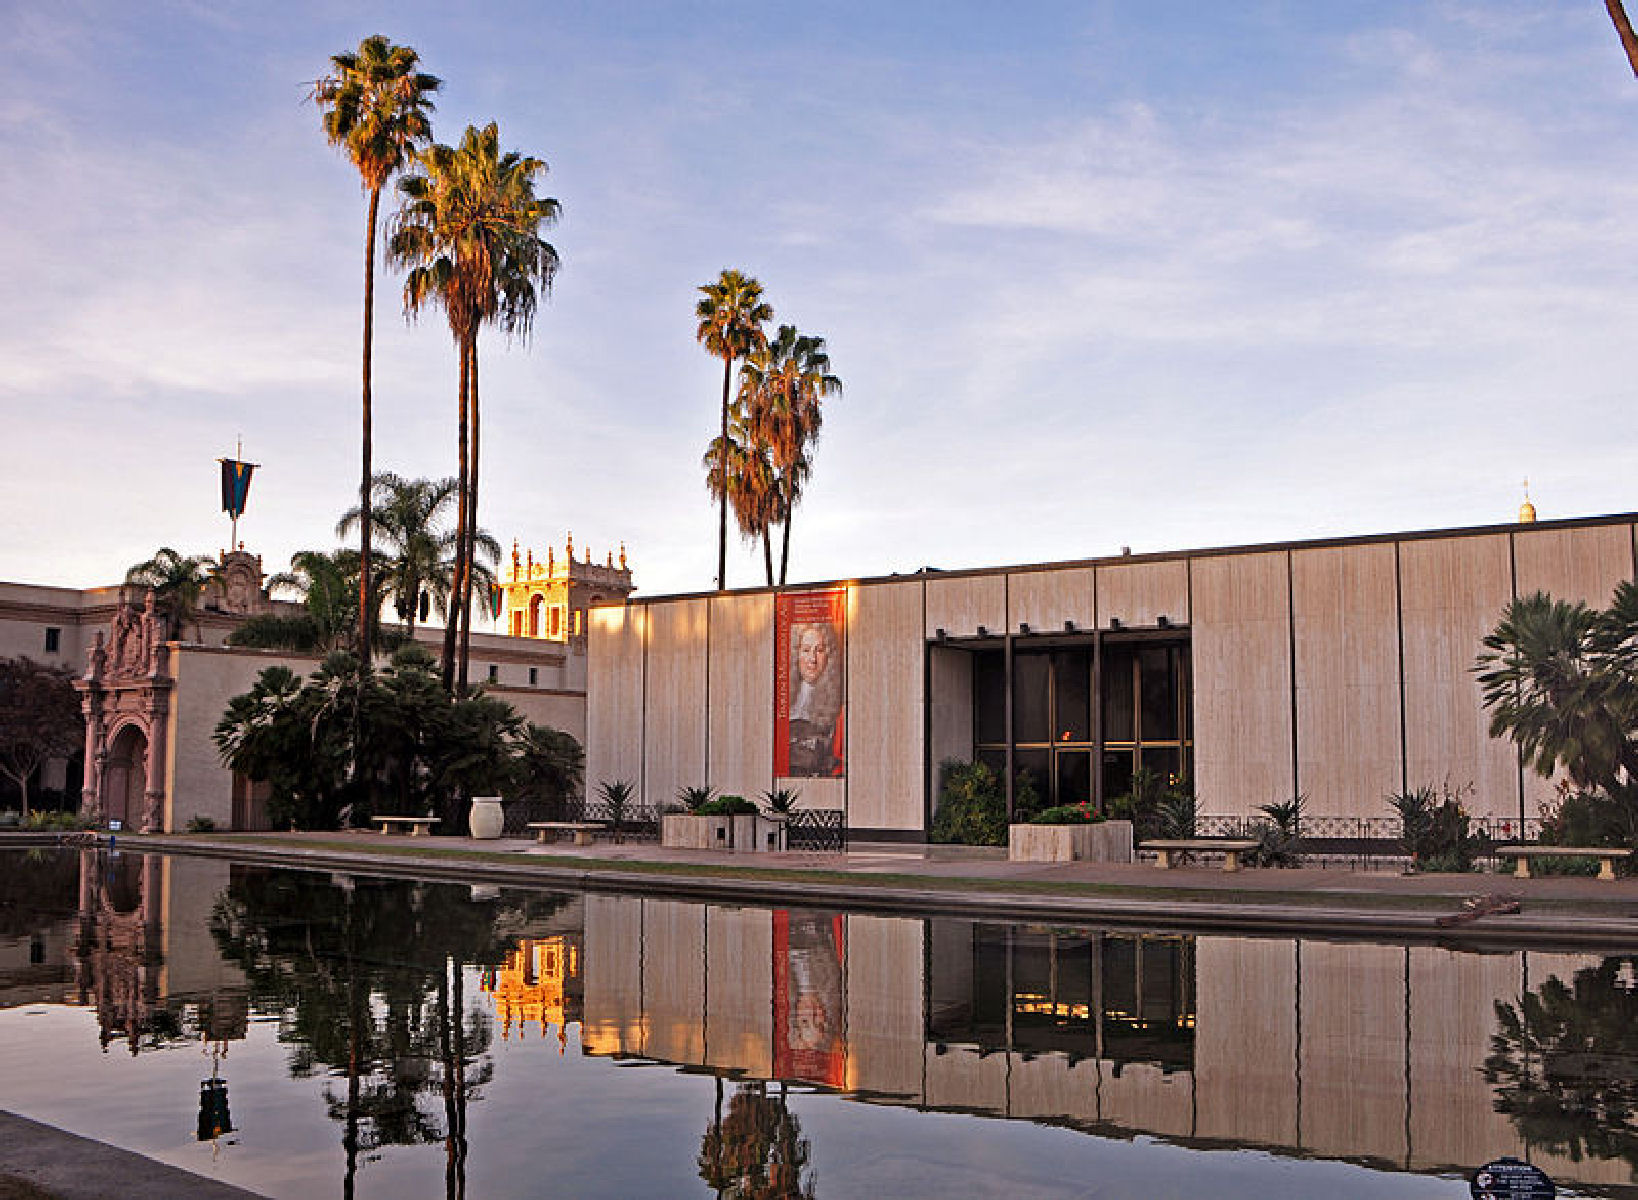 an enjoyable time and experience at the san diego museum of art in balboa park with jose garcia Balboa park explorer art  the san diego museum of art 1450 el prado balboa park, san diego, ca  mailing address po box 122107 san diego, ca 92112-2107 phone.